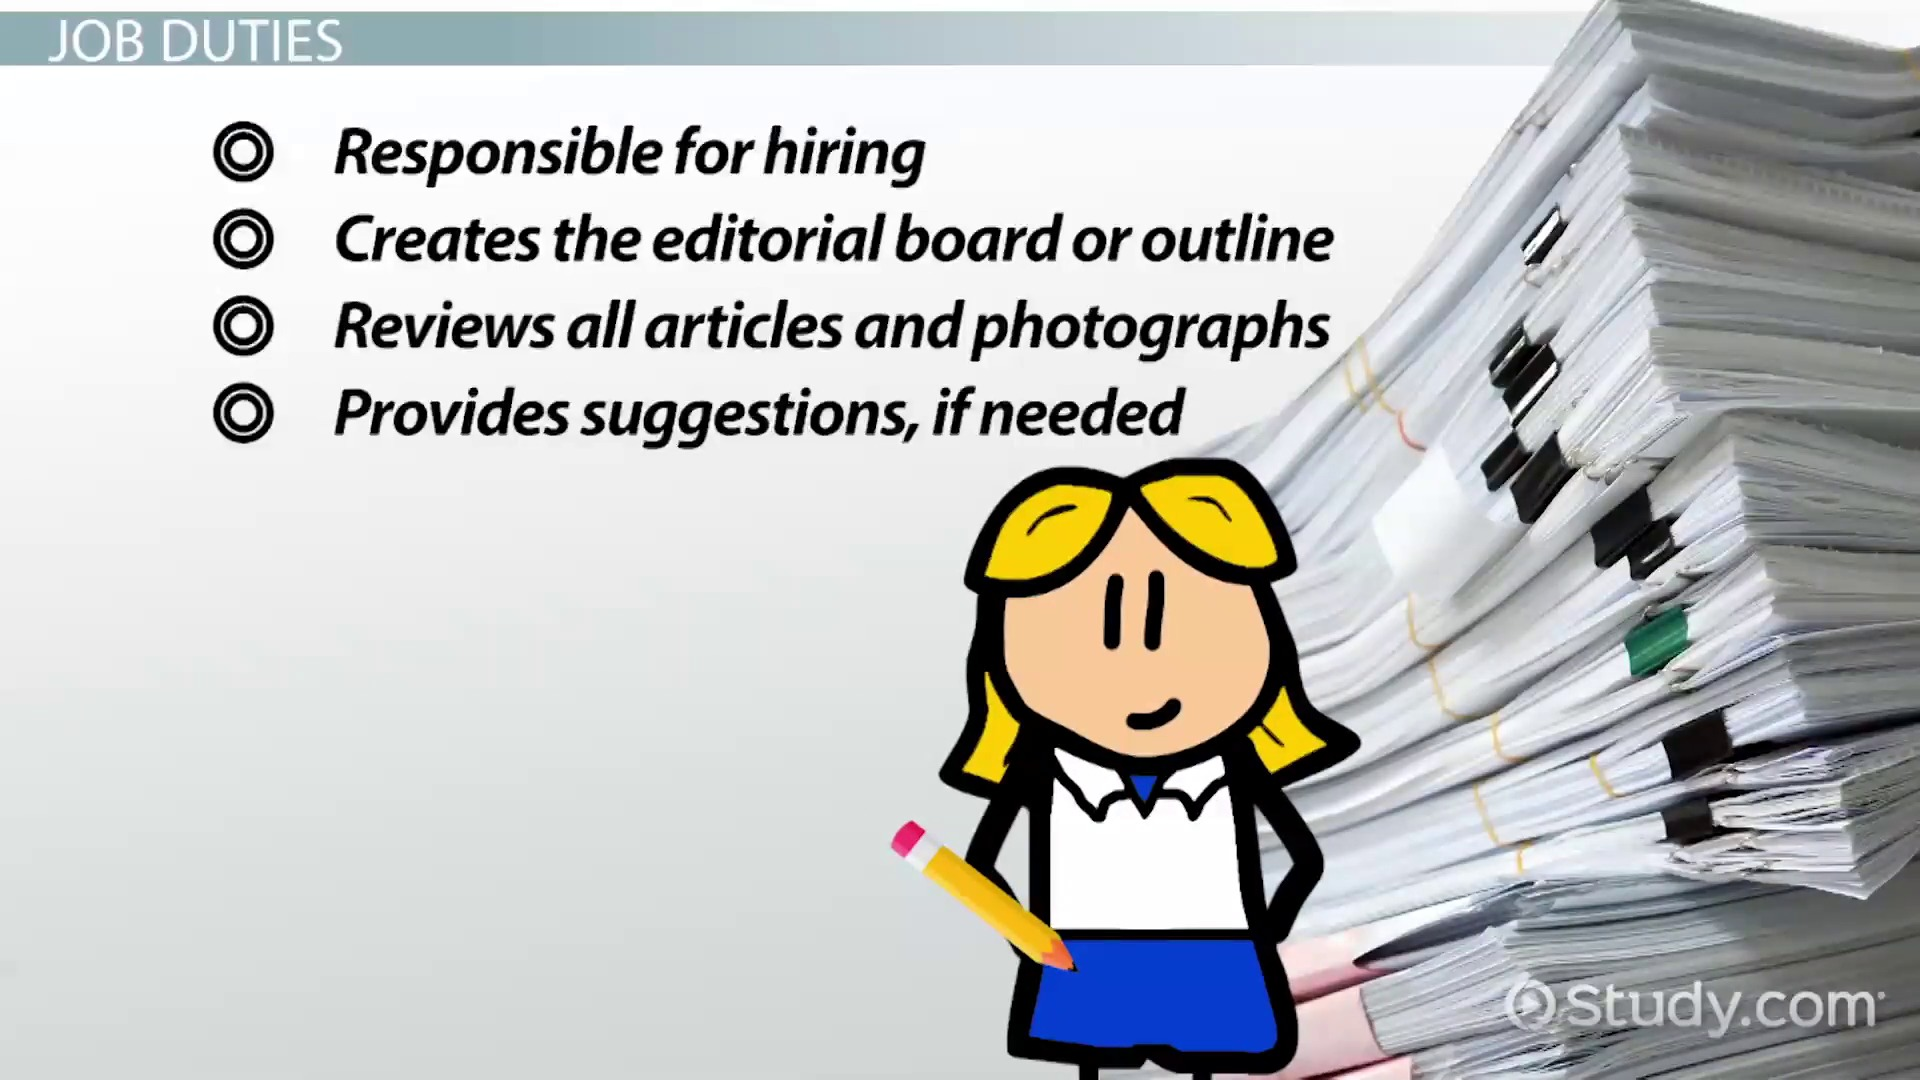 Job Description of an EditorinChief – Executive Editor Job Description